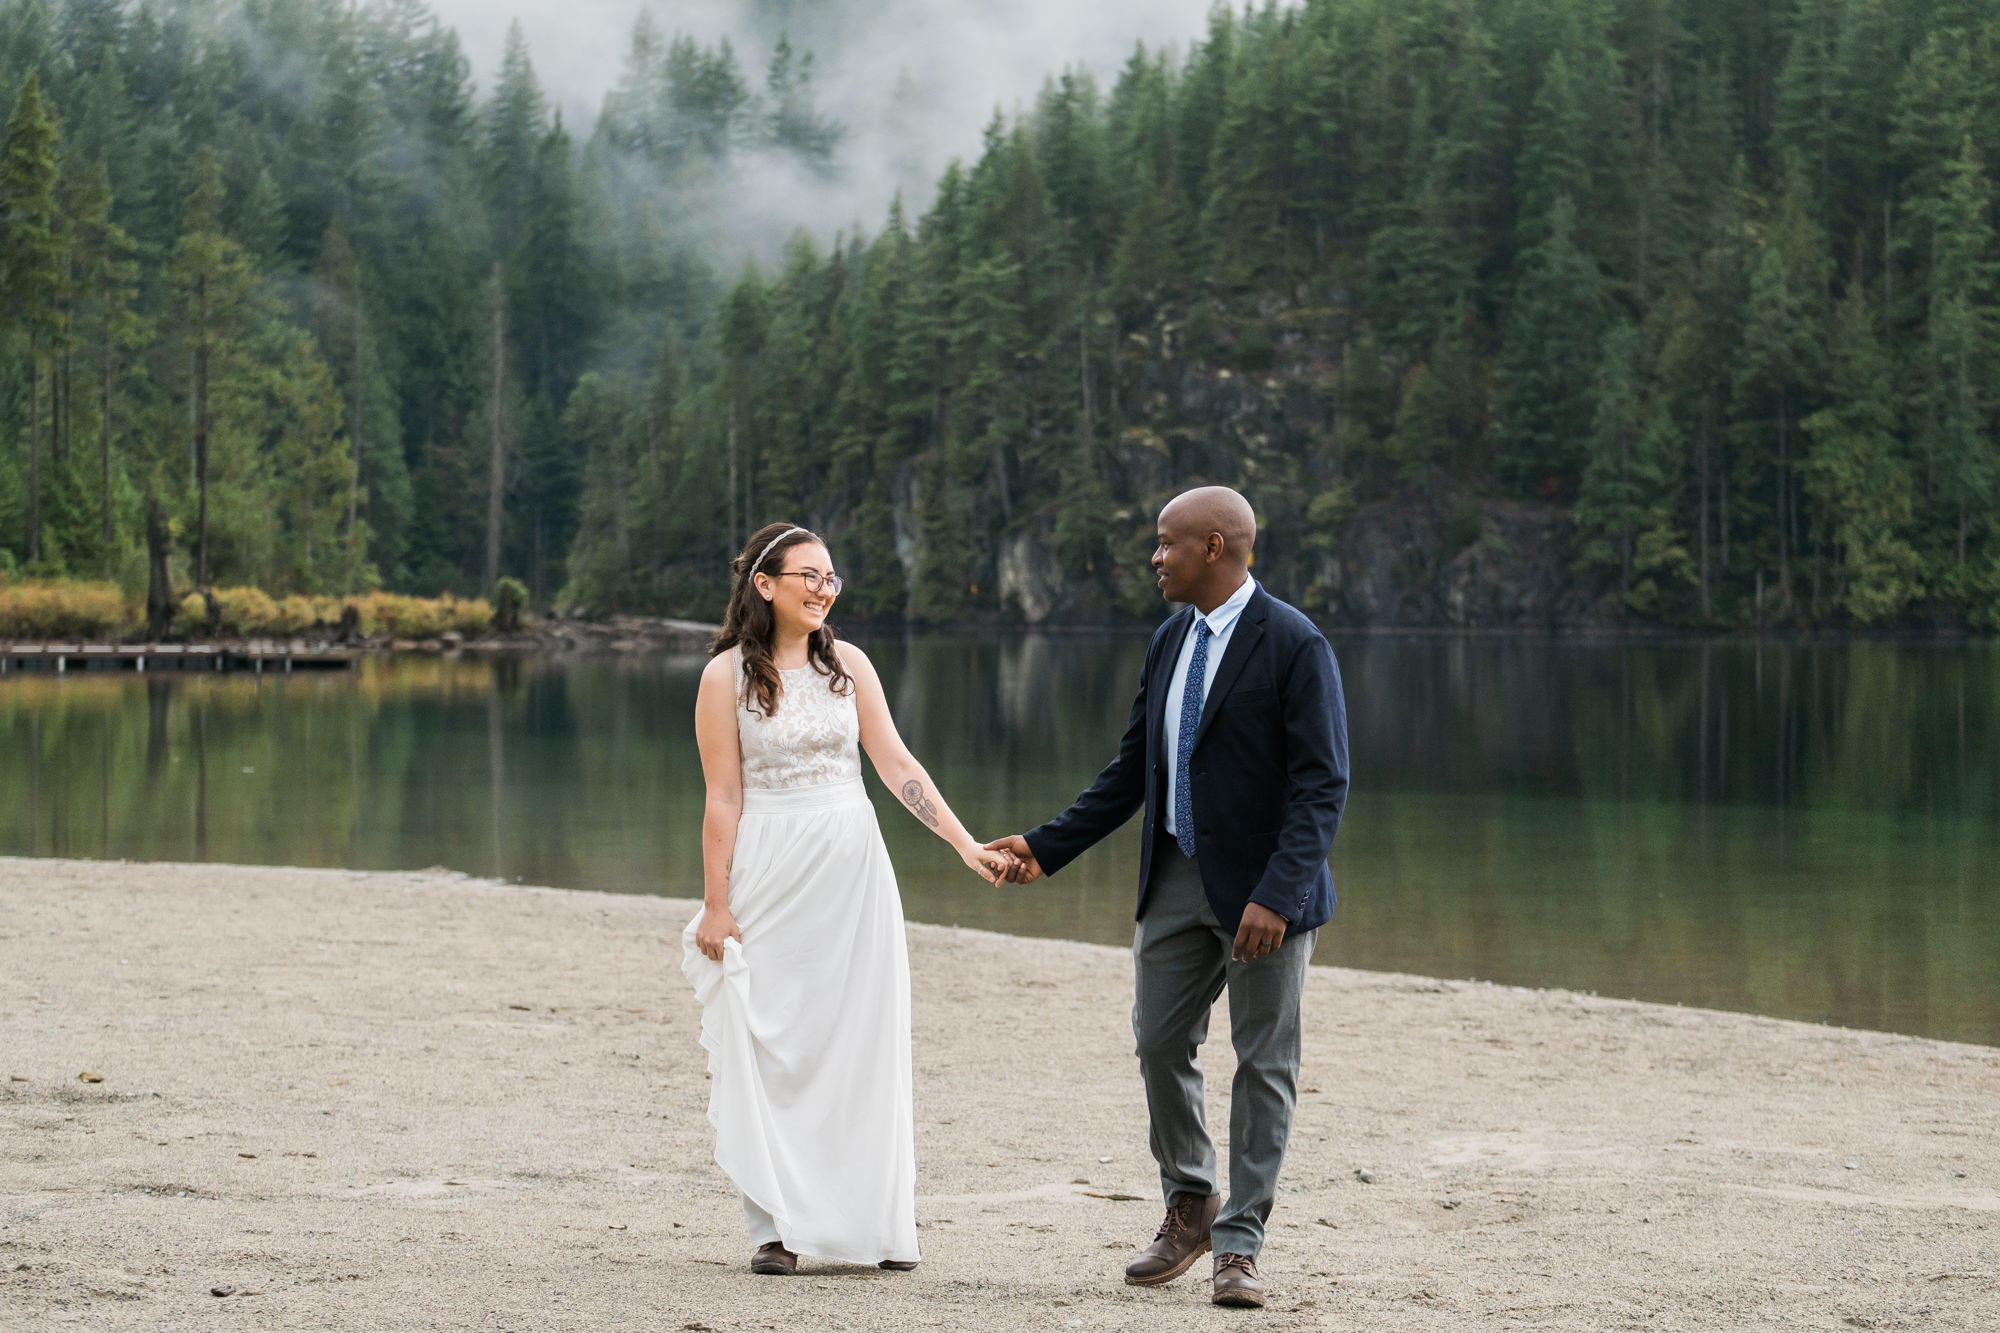 black groom holding the hand of a white bride on the edge of a lake with mist